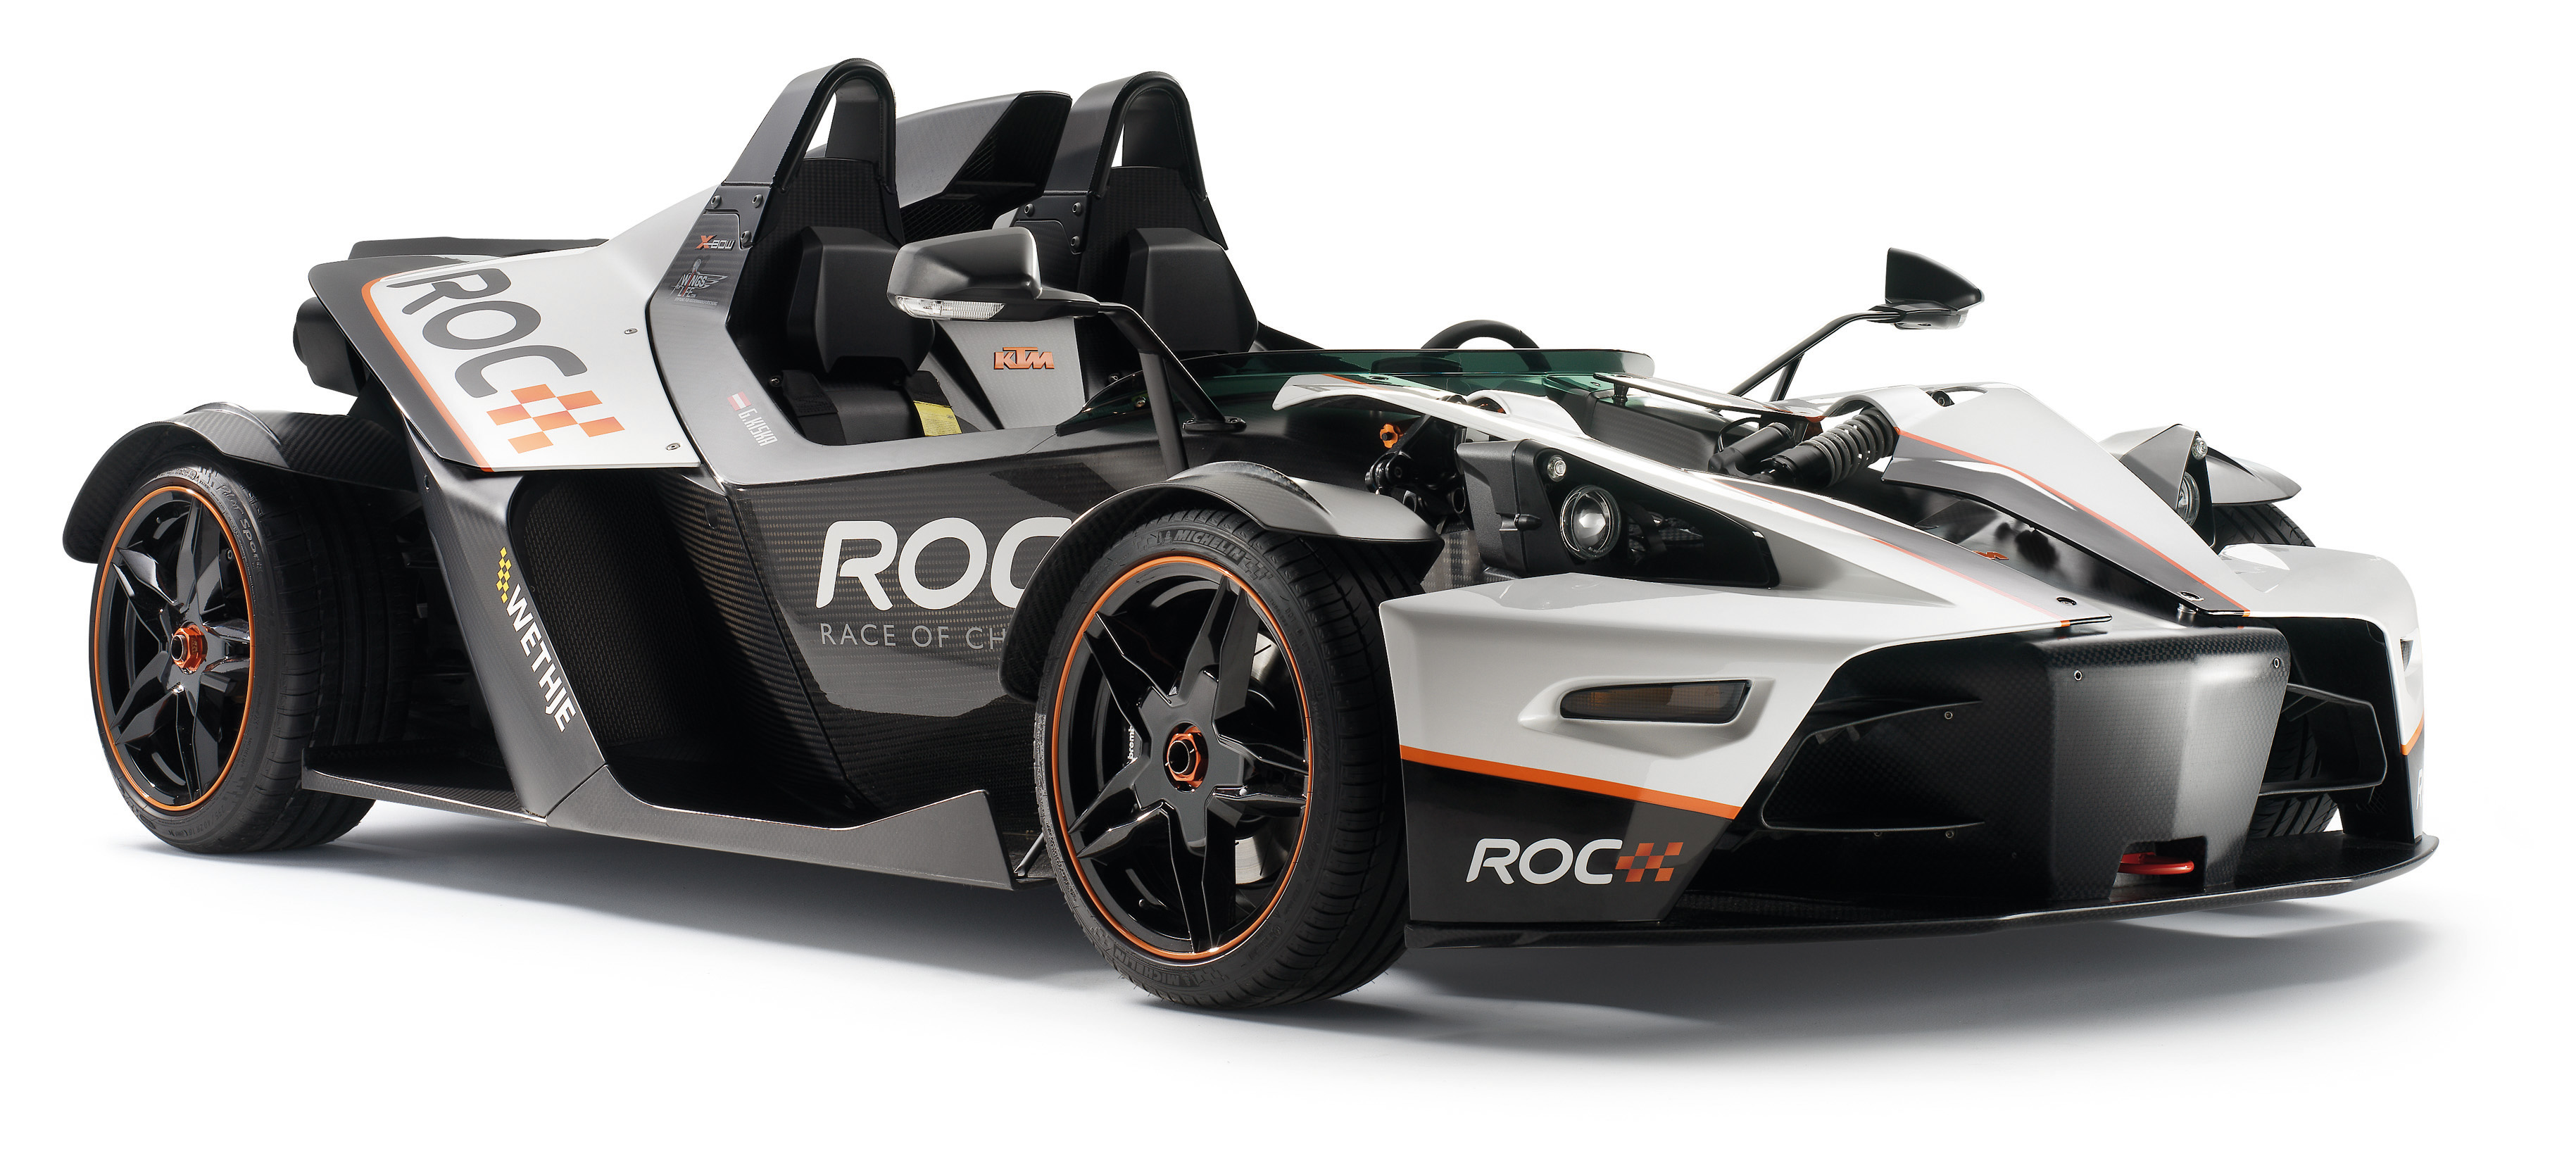 2009 Ktm X Bow Race Of Champions 251269 Best Quality Free High